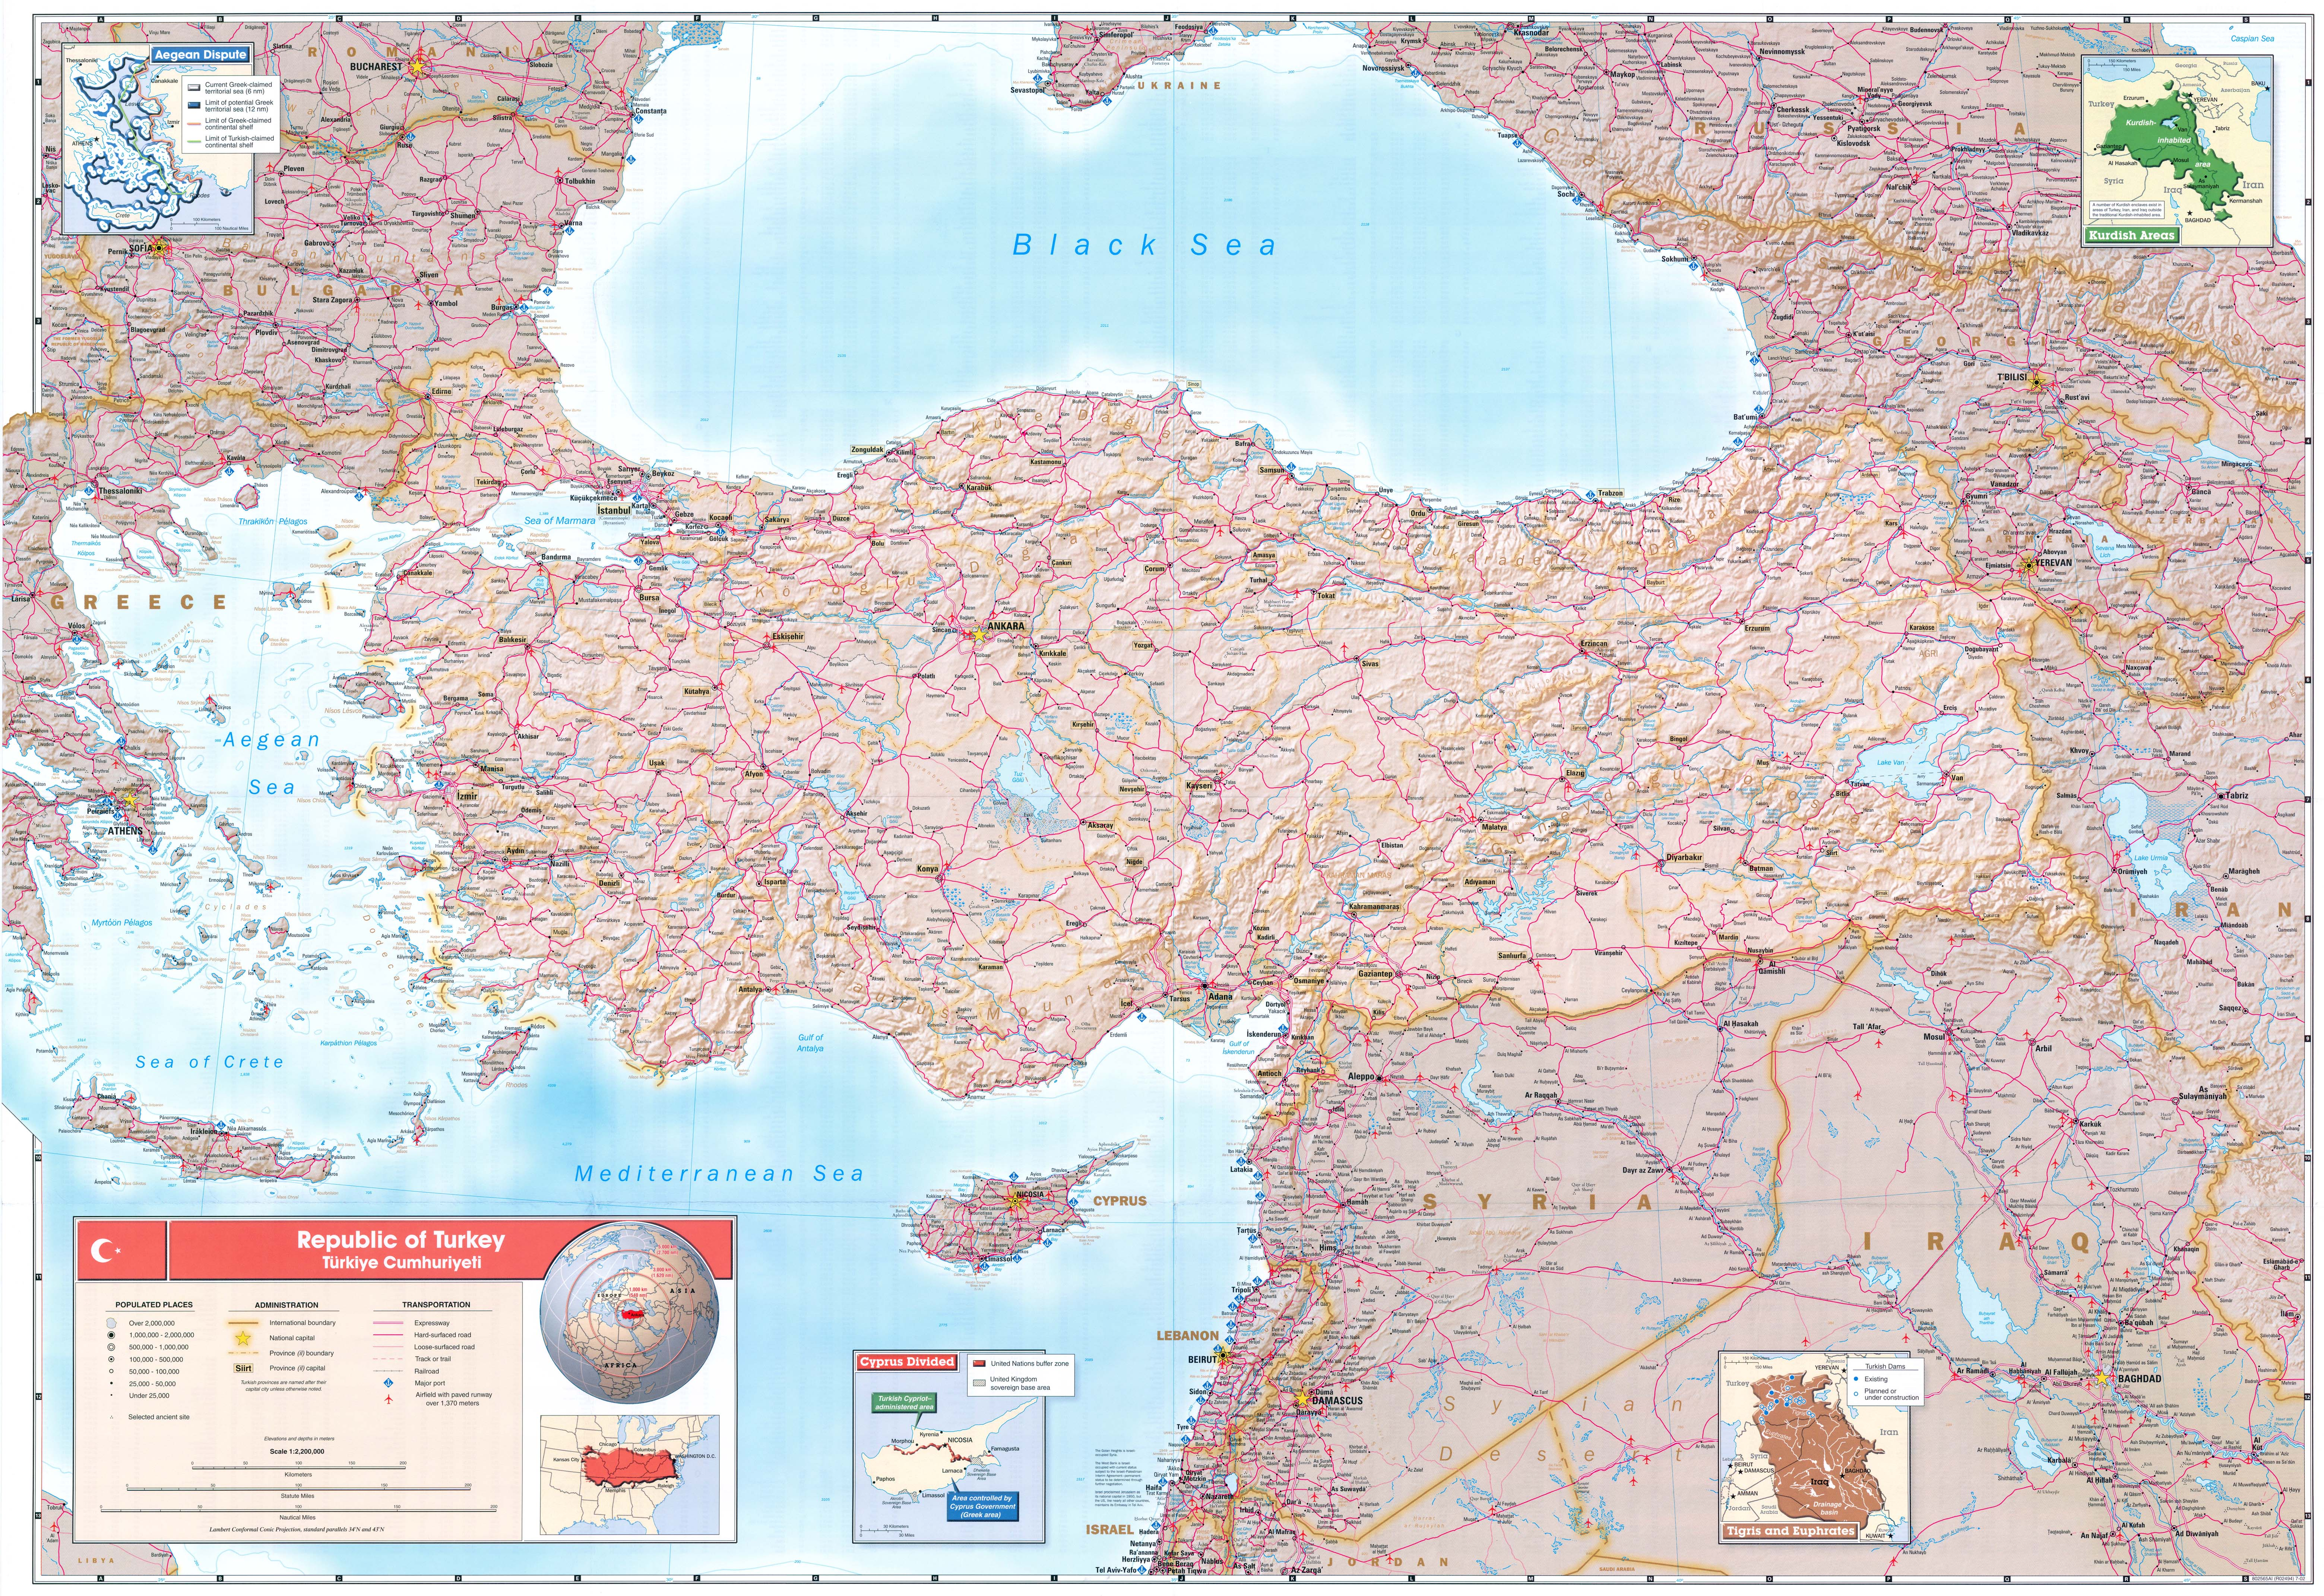 Map Of Asia High Resolution.High Resolution Detailed Road And Political Map Of Turkey Turkey